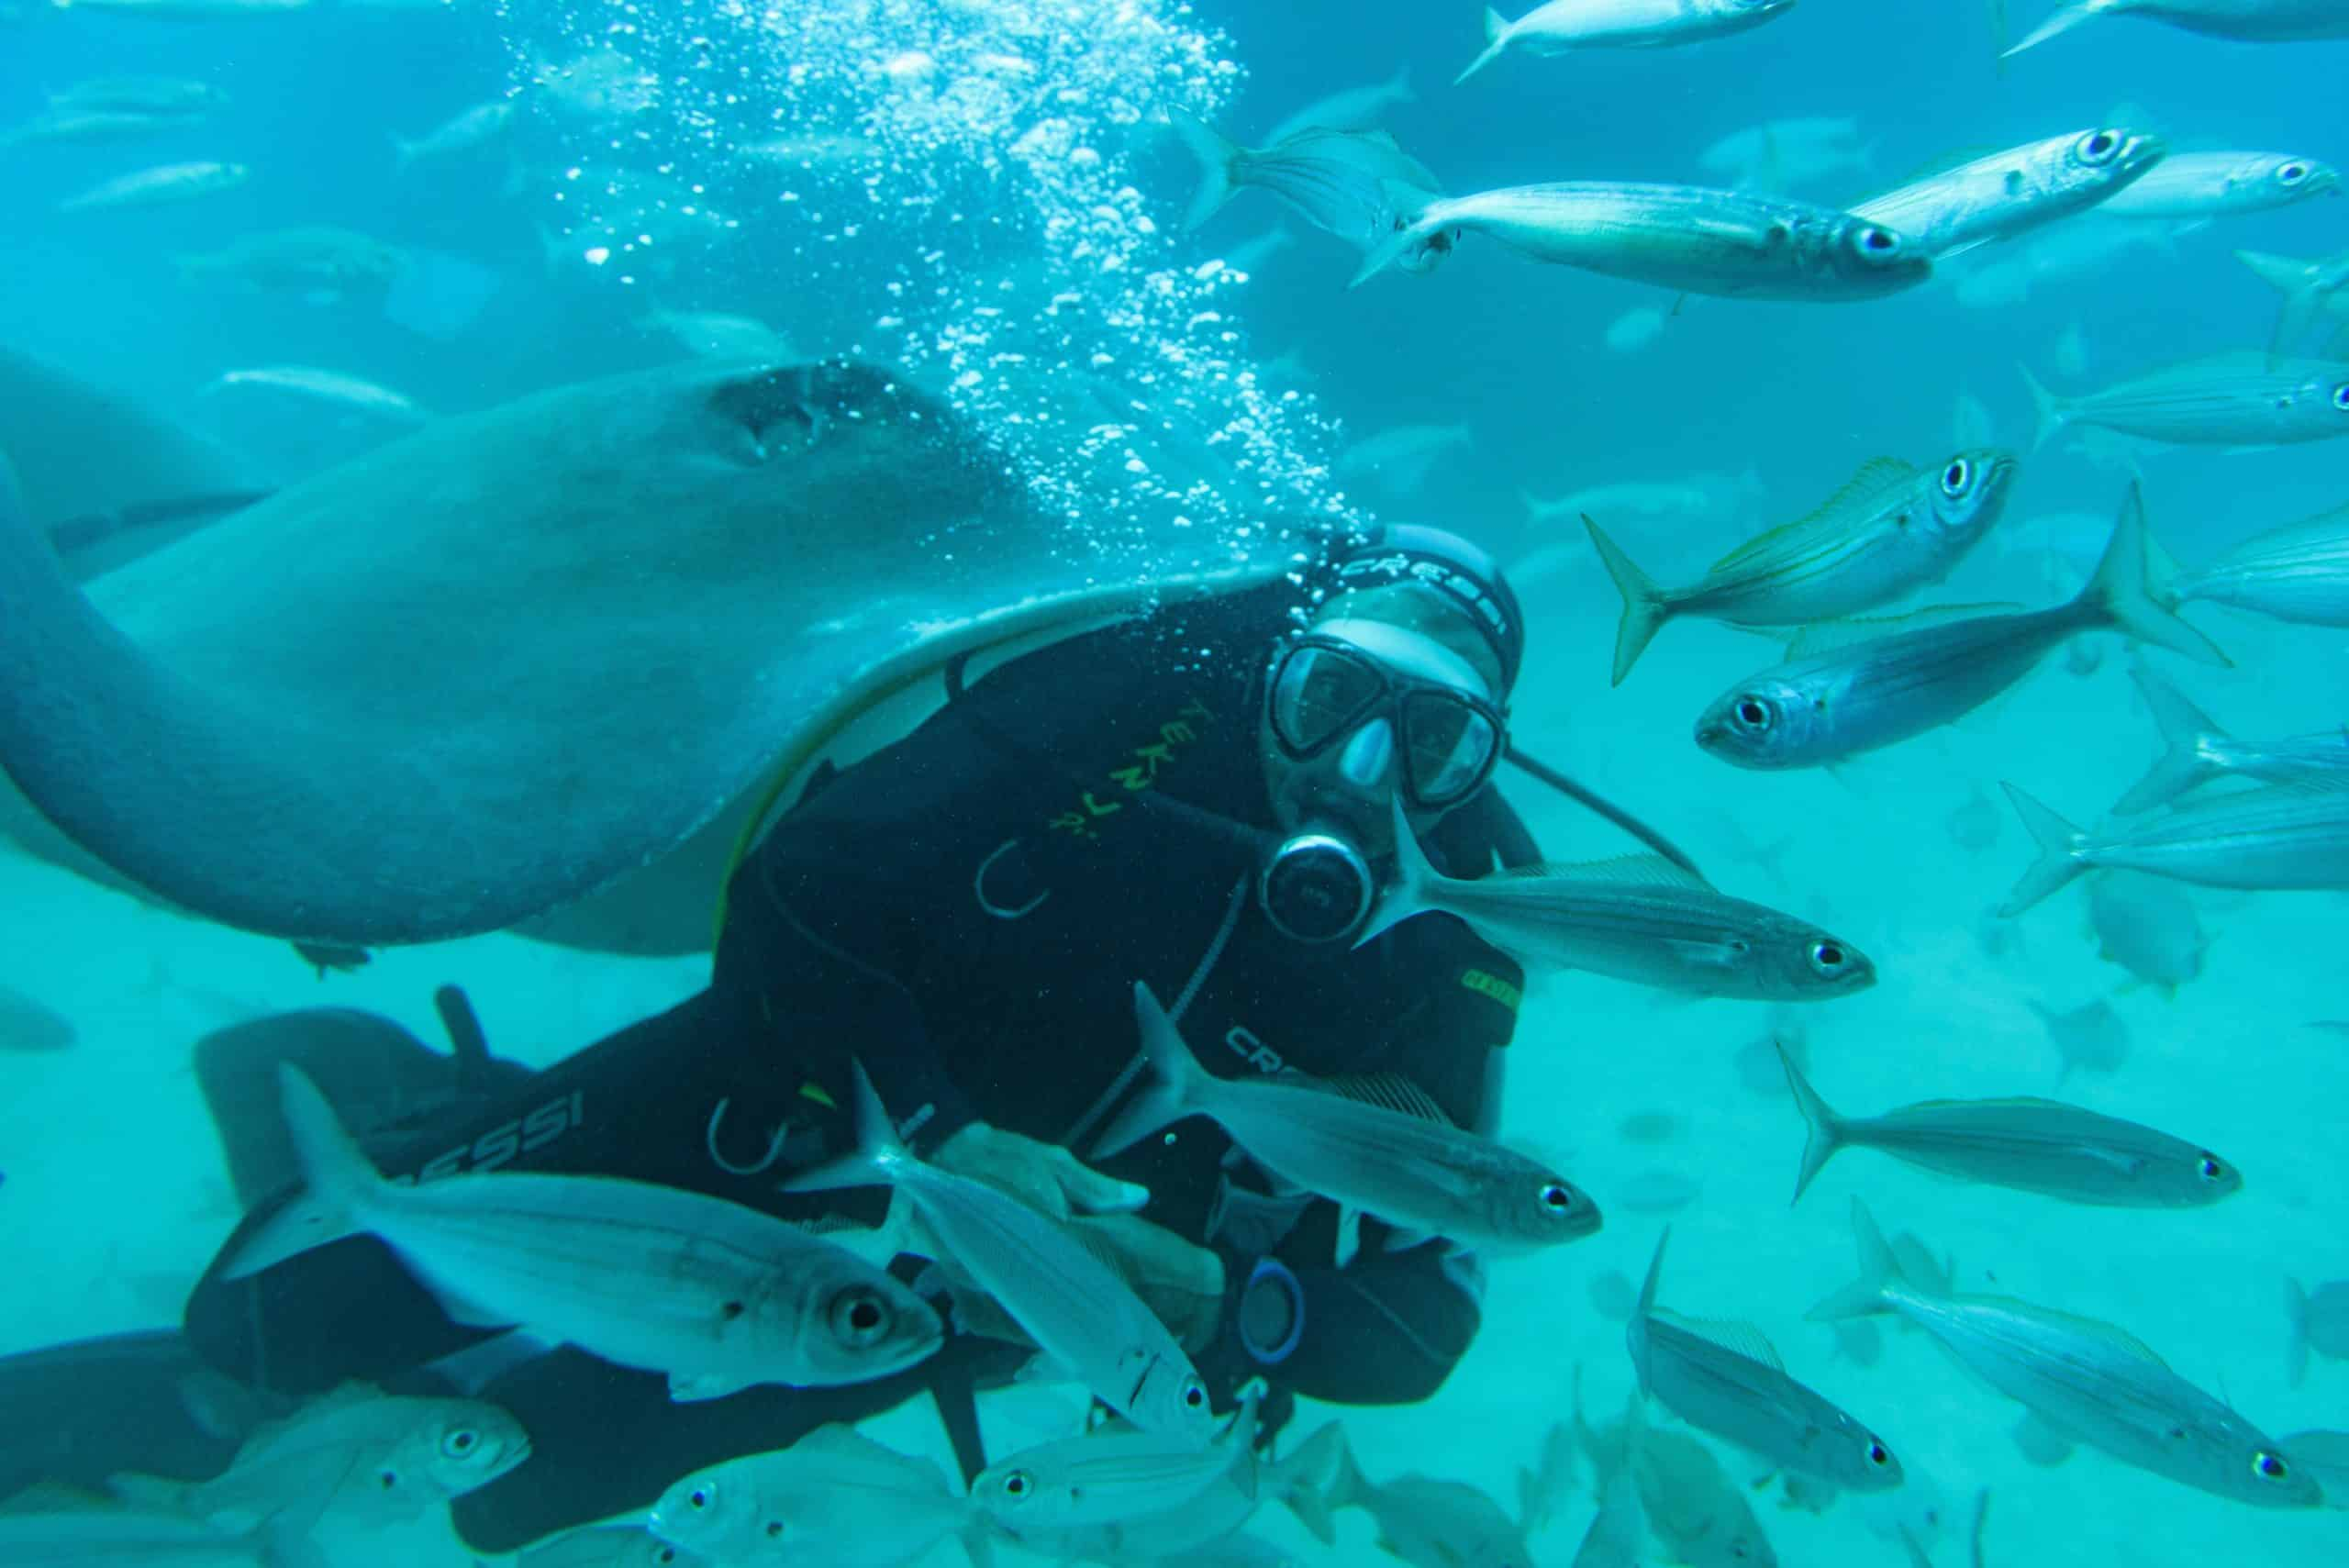 The Beginner's Guide To Snorkeling And Scuba Diving